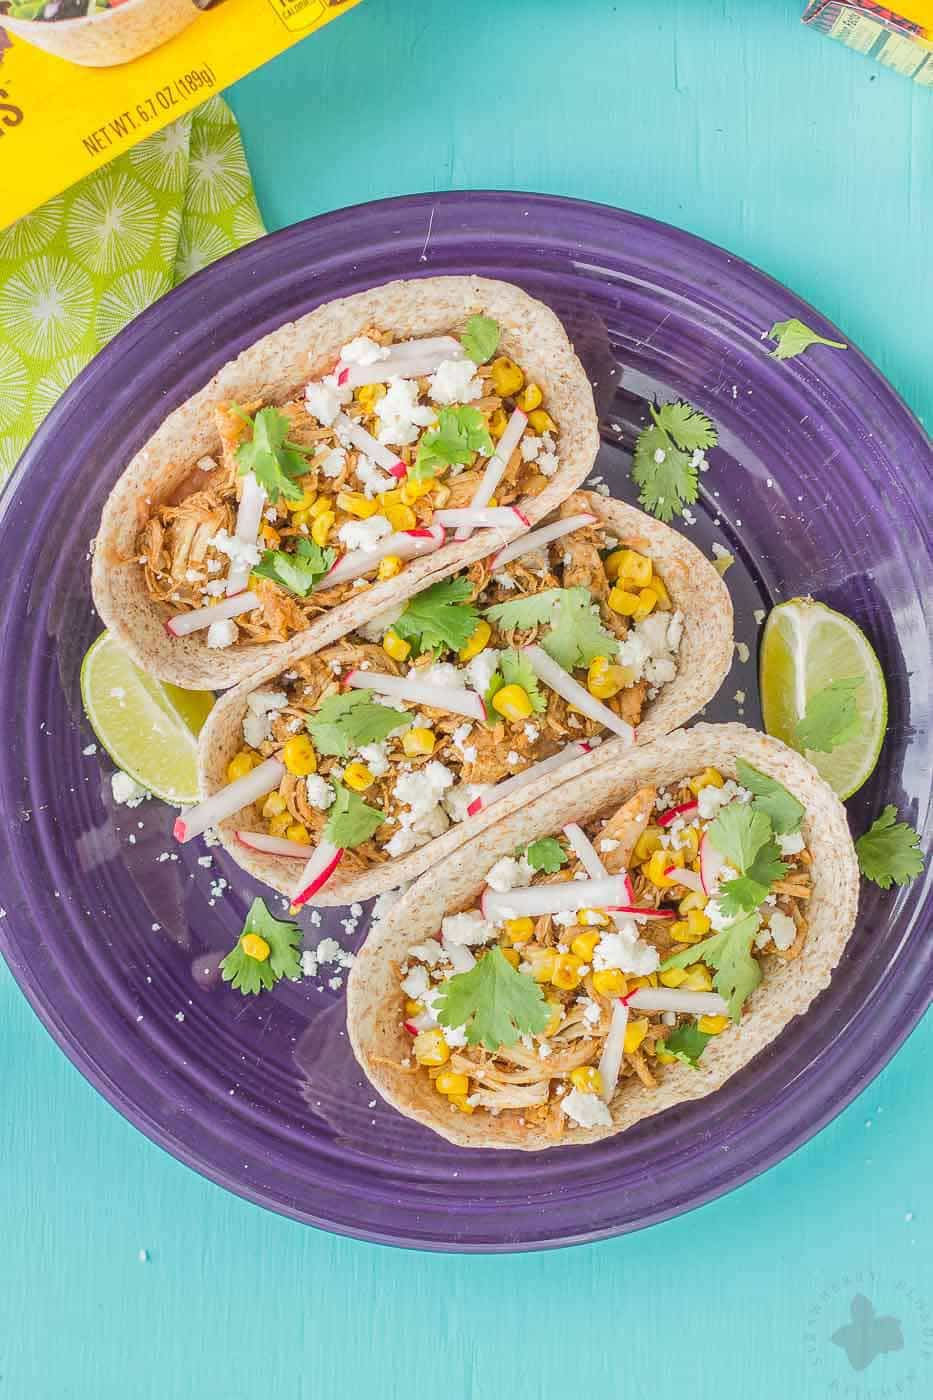 There's no better way to use up leftover Thanksgiving Turkey than Turkey Carnitas. They're perfect for Taco Tuesday, game day and a BIG crowd pleaser! | Strawberry Blondie Kitchen